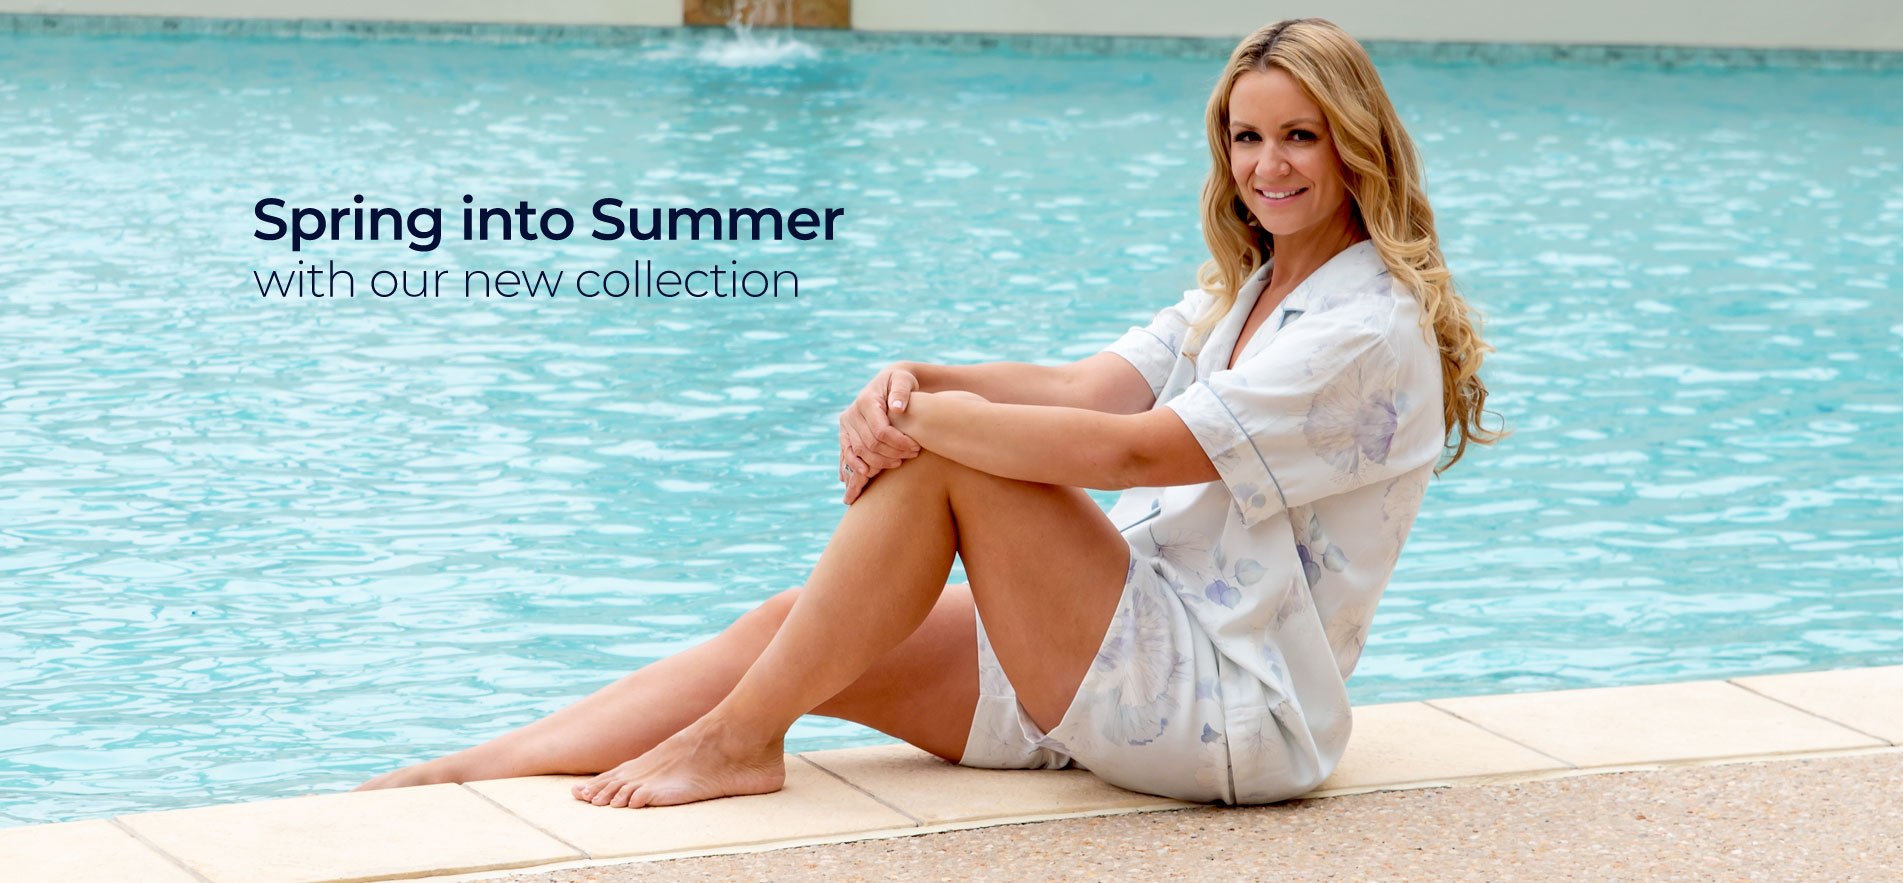 spring into summer with our new collection